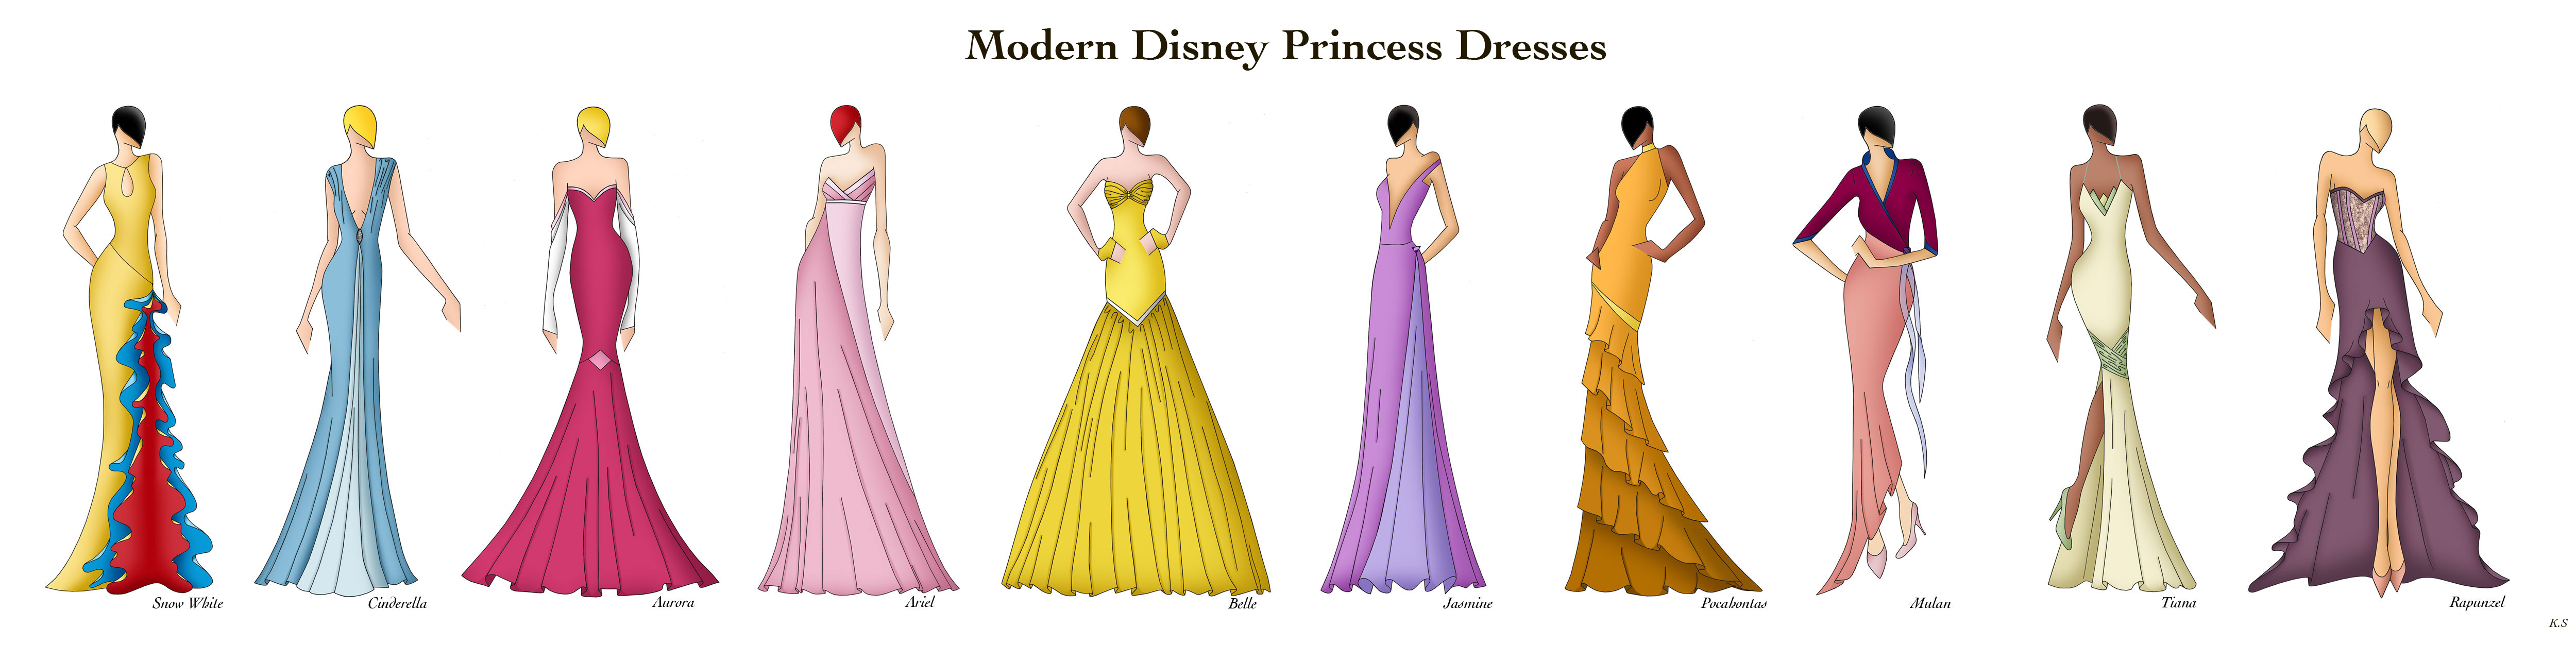 Modern Disney Princess Dresses by Ellevira 5000x1283